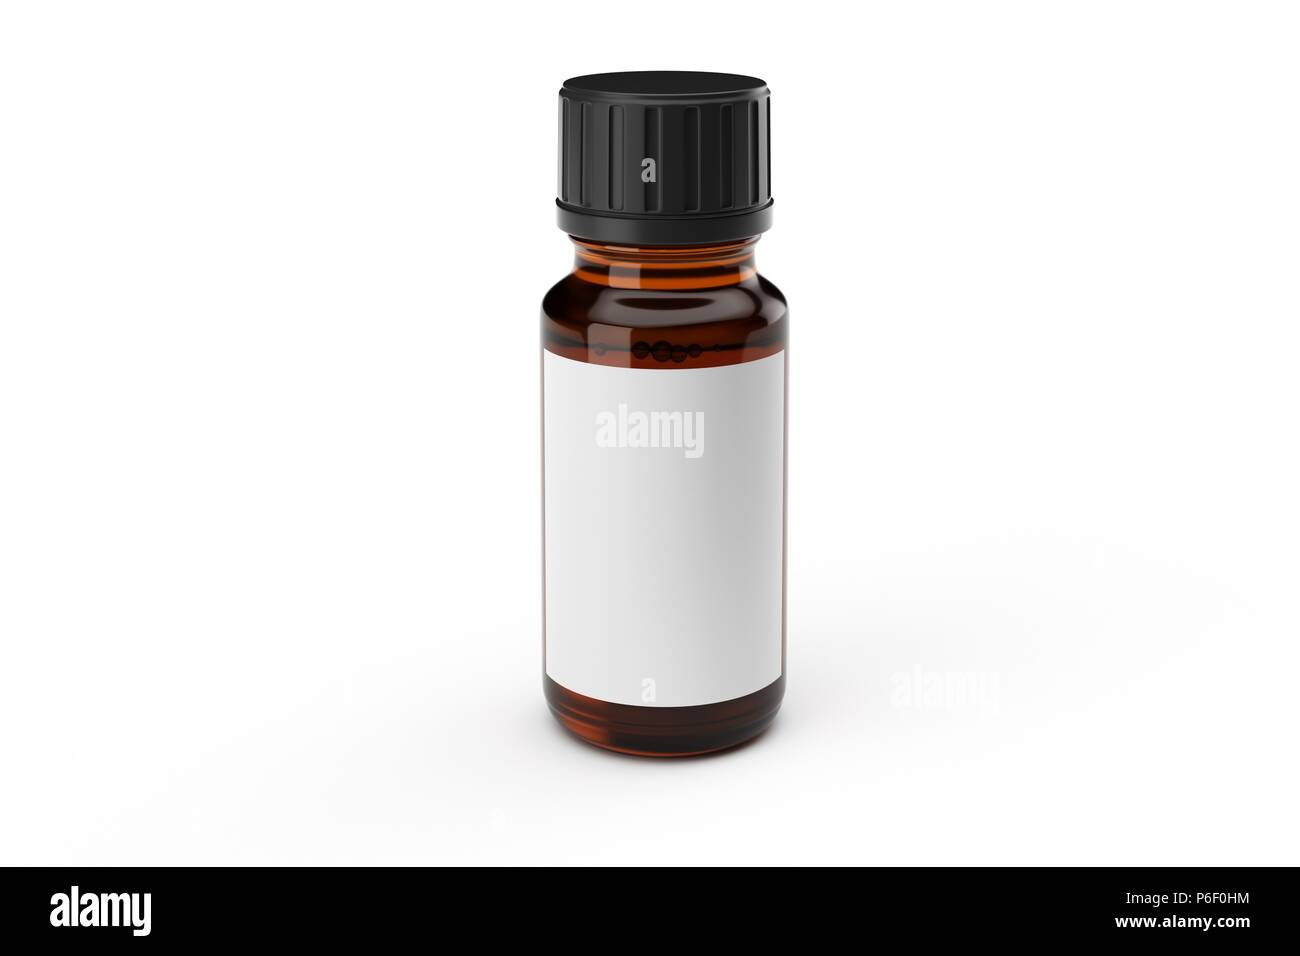 Brown medicine glass dropper bottle with white label isolated - Stock Image